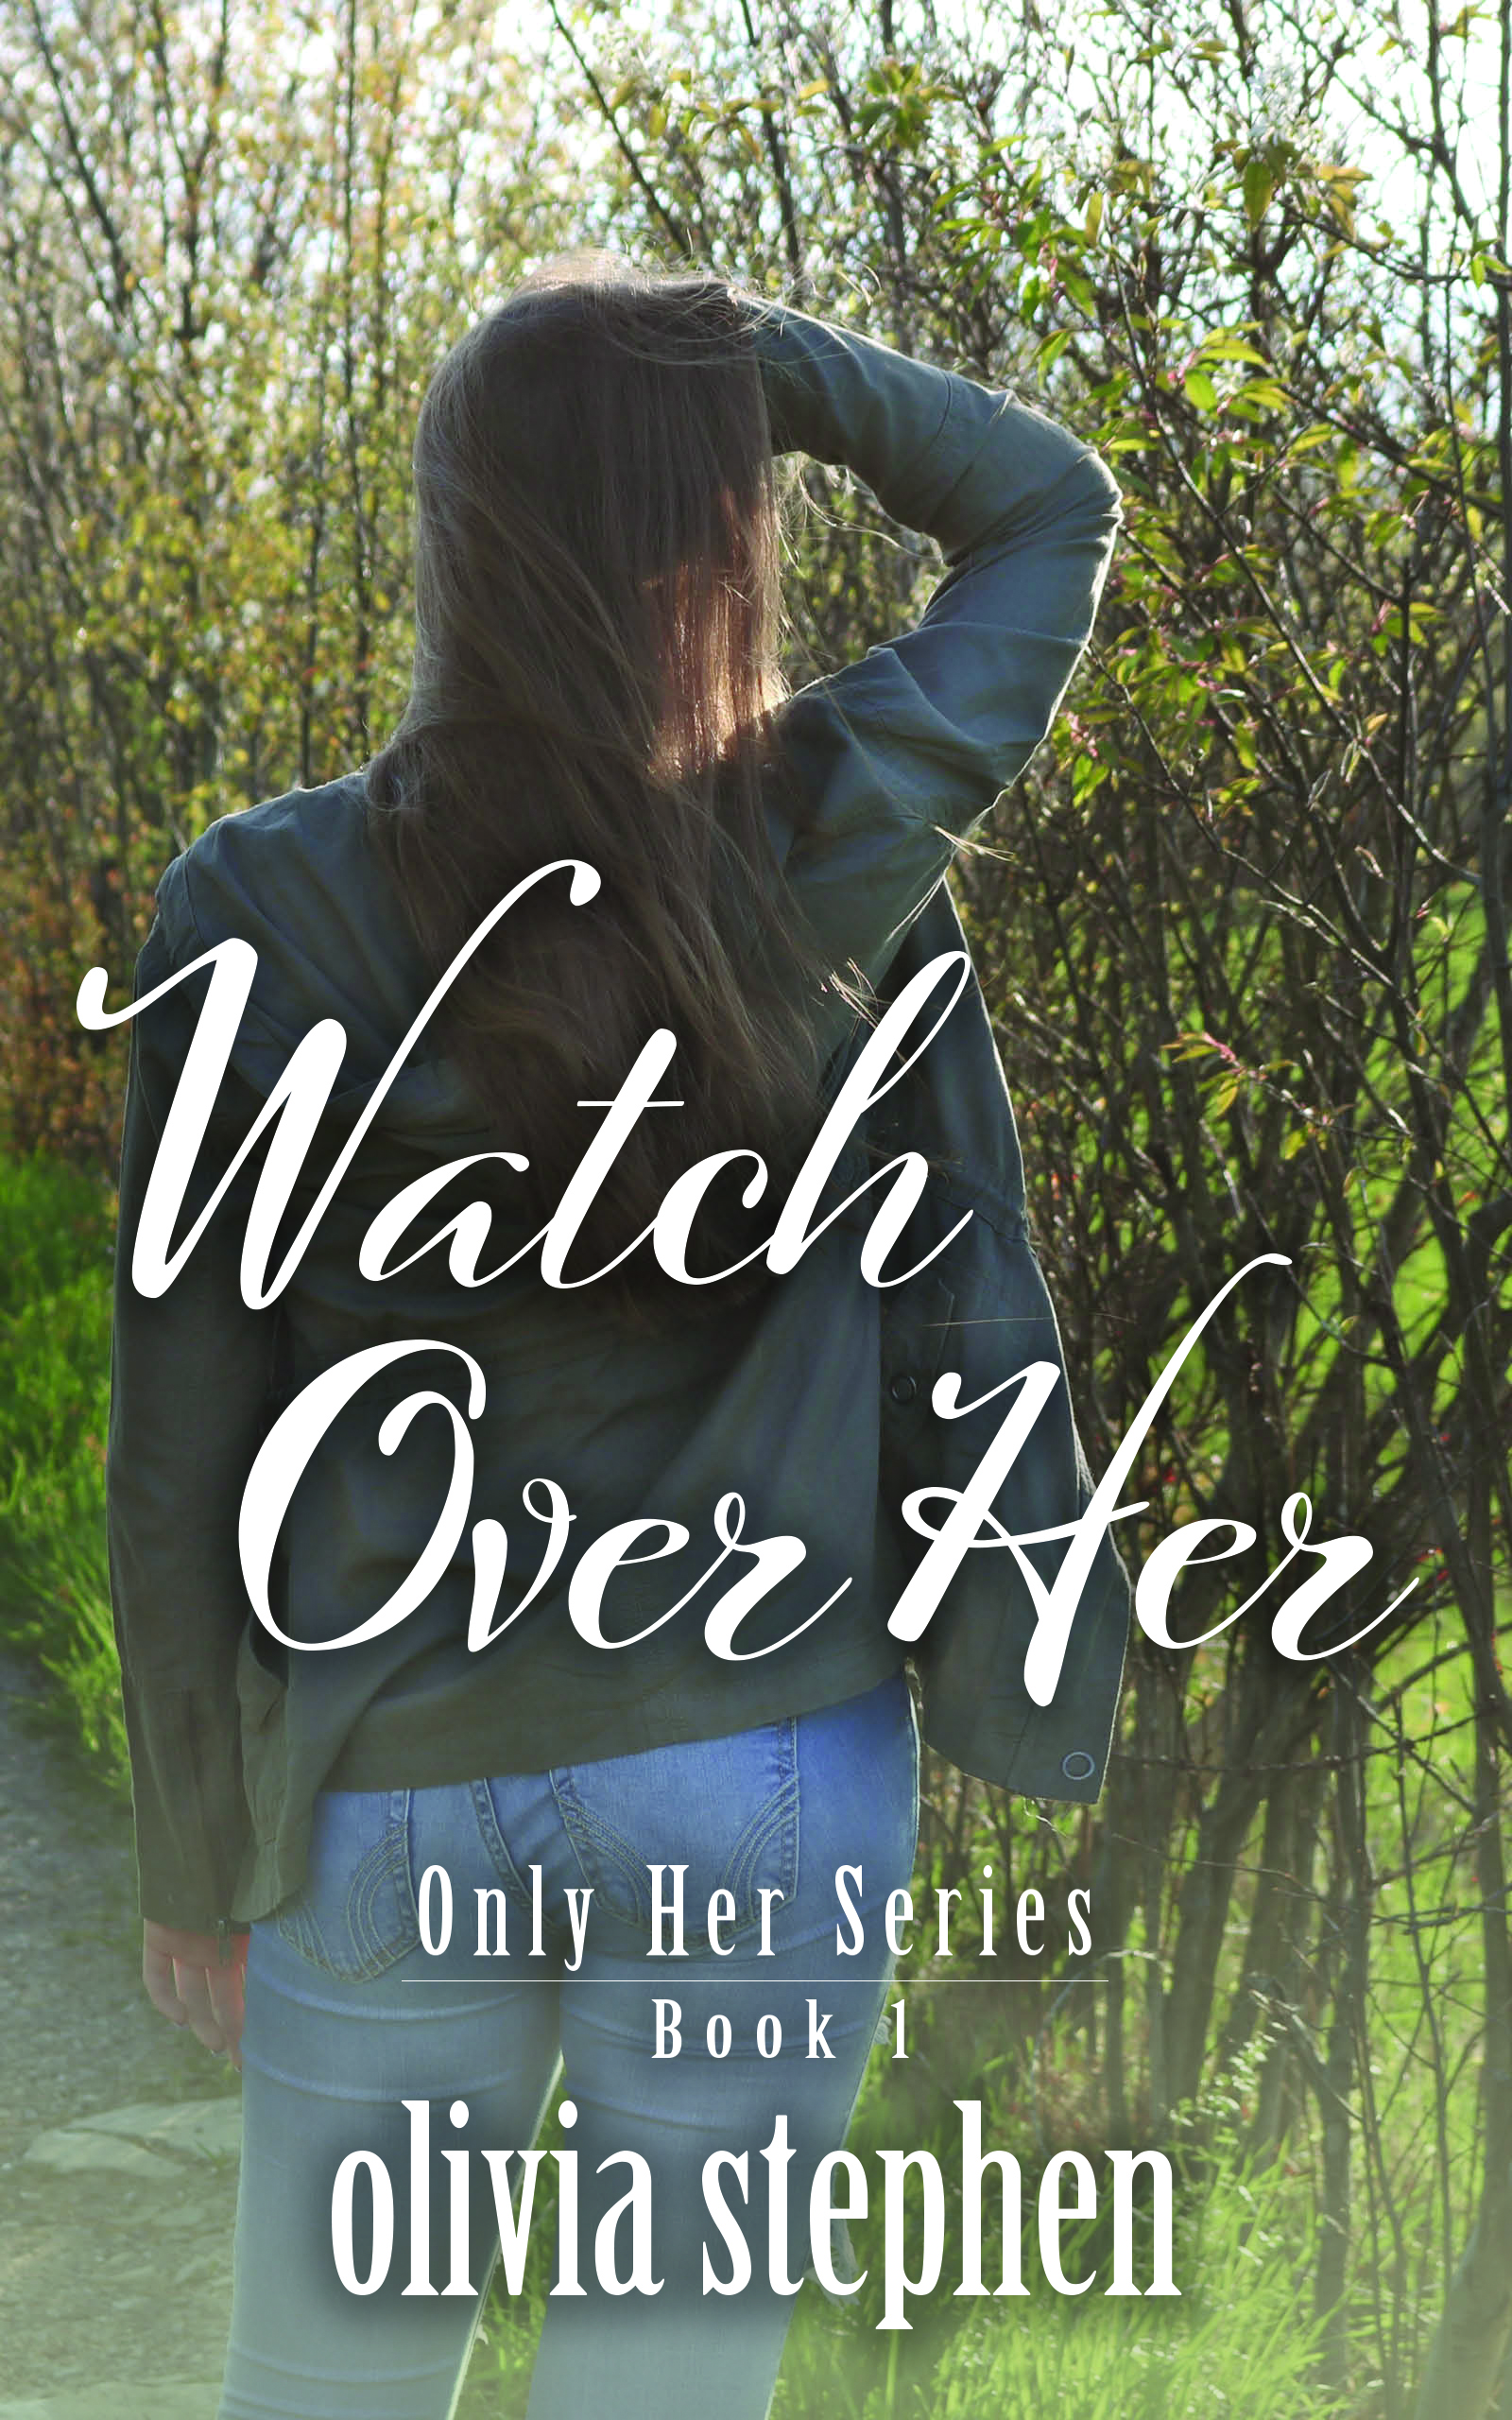 Watch Over Her ebook UPDATED (1)